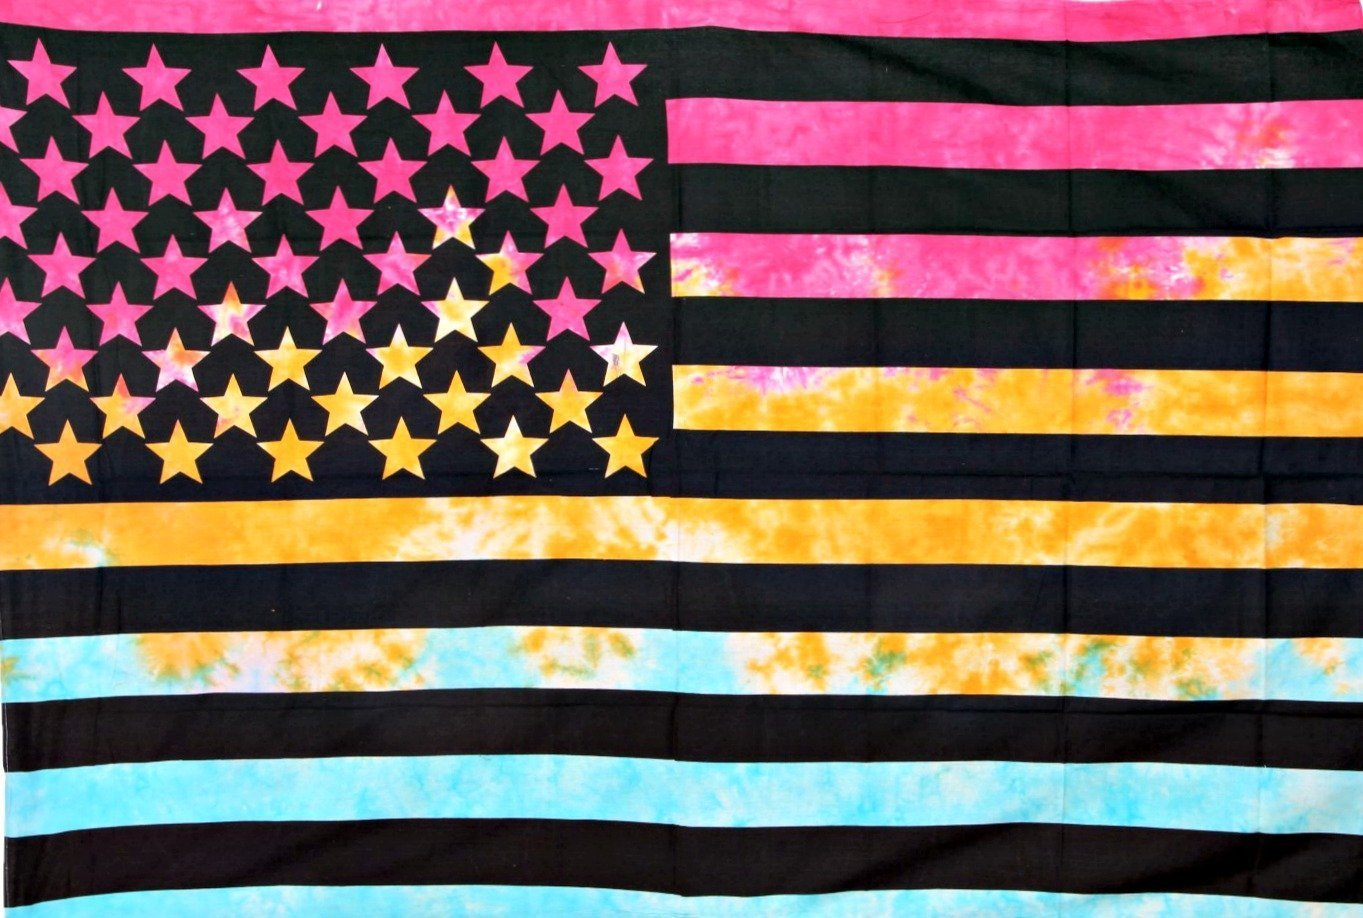 Amazon.com: Multi Tie Dye American Flag Tapestry Dorm Decor US Flag ...